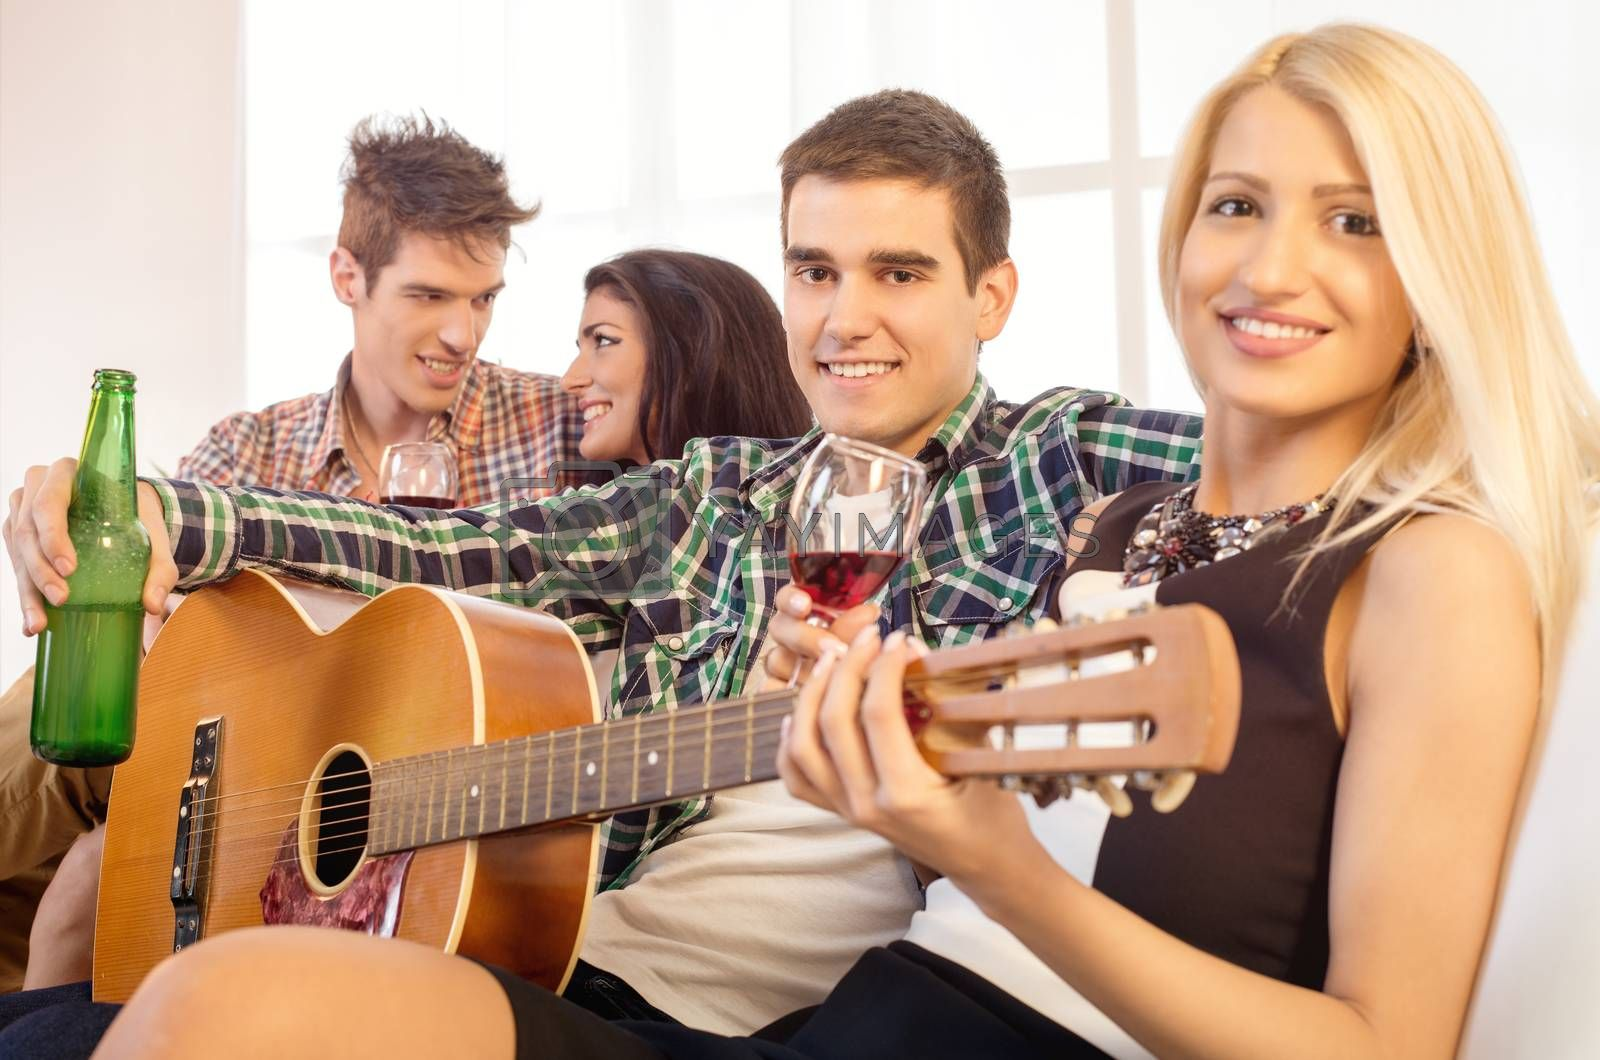 Small group of happy young people hang out at the house party with an acoustic guitar.